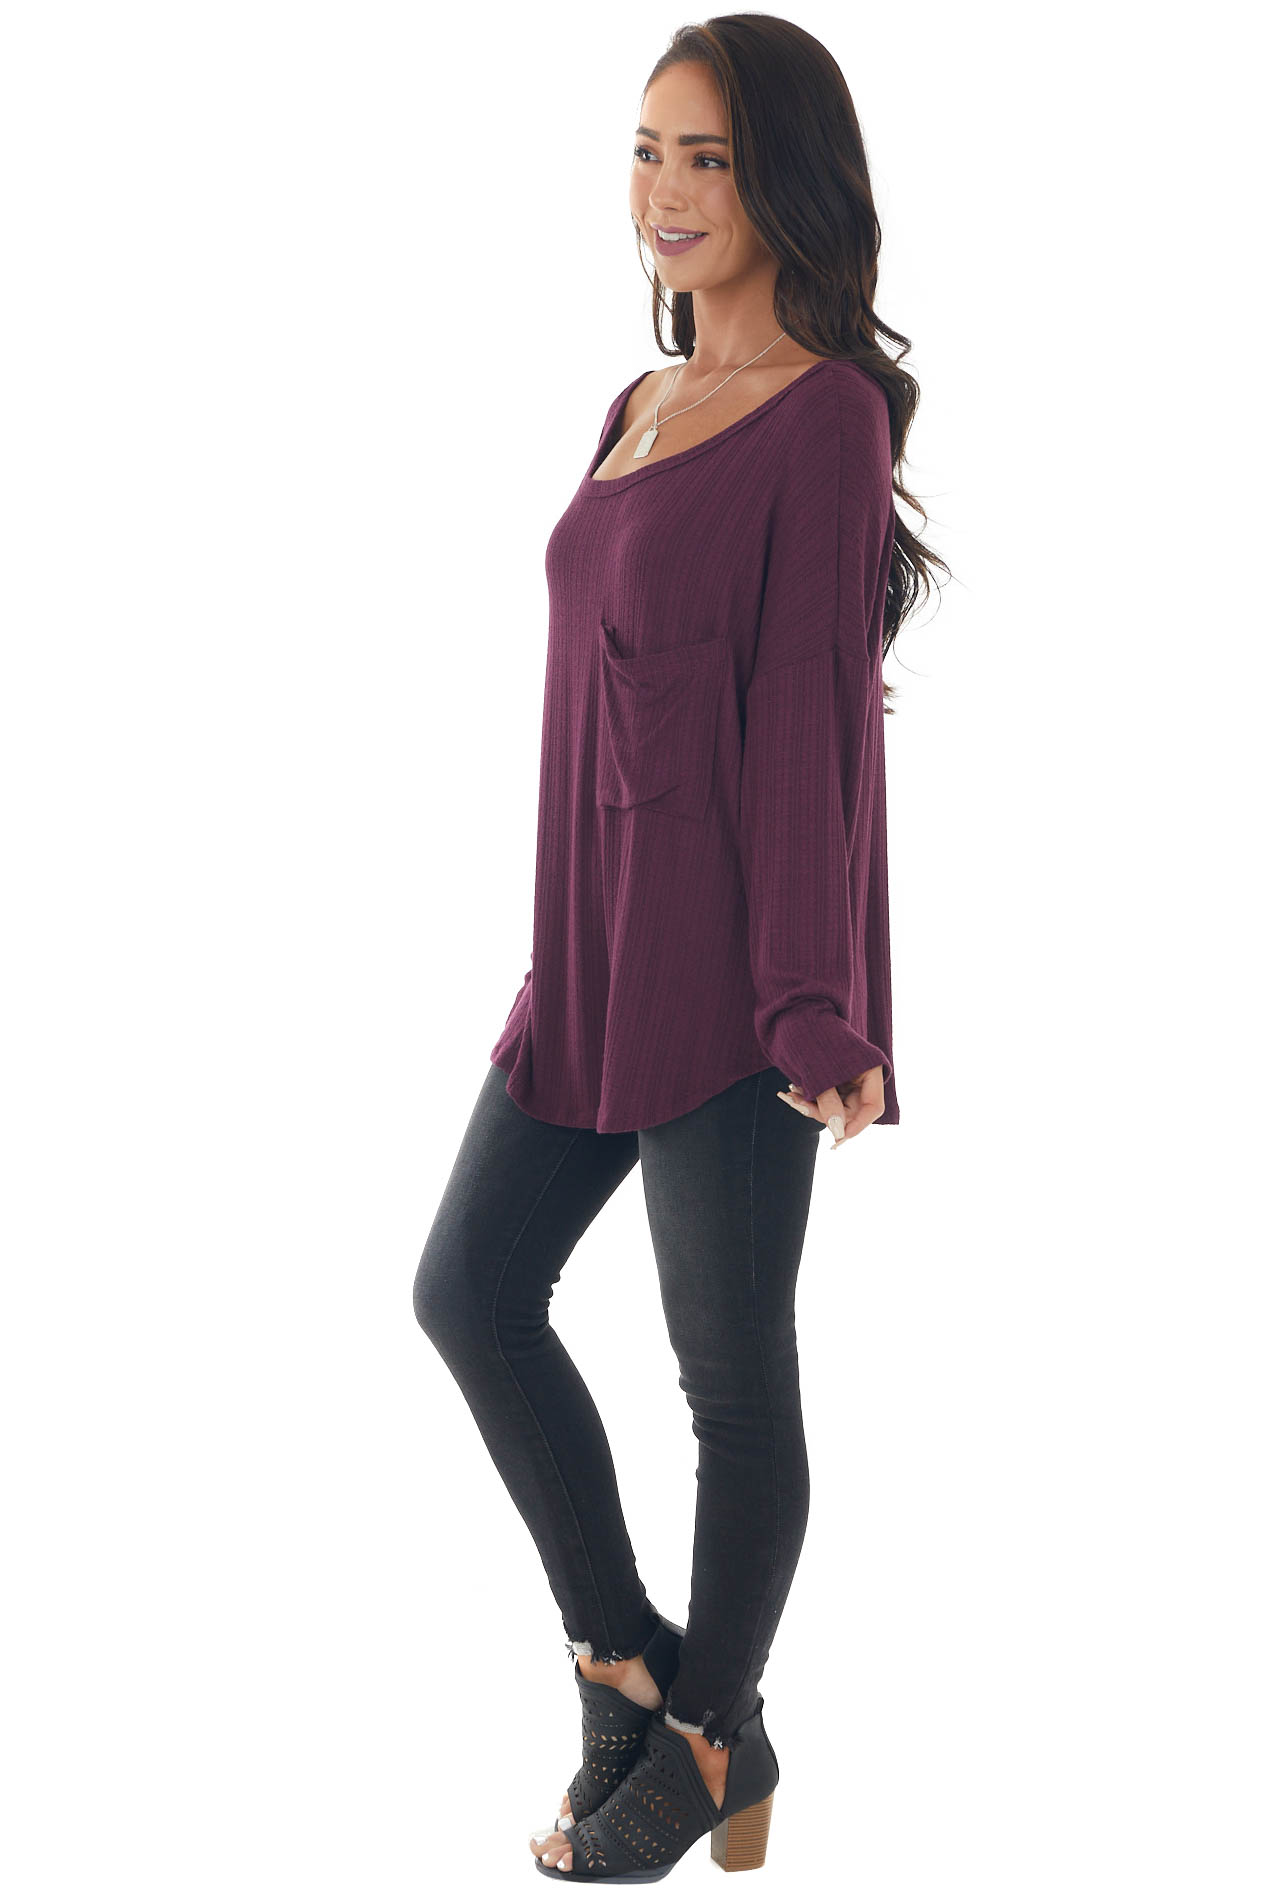 Plum Textured Knit Top with Chest Pocket